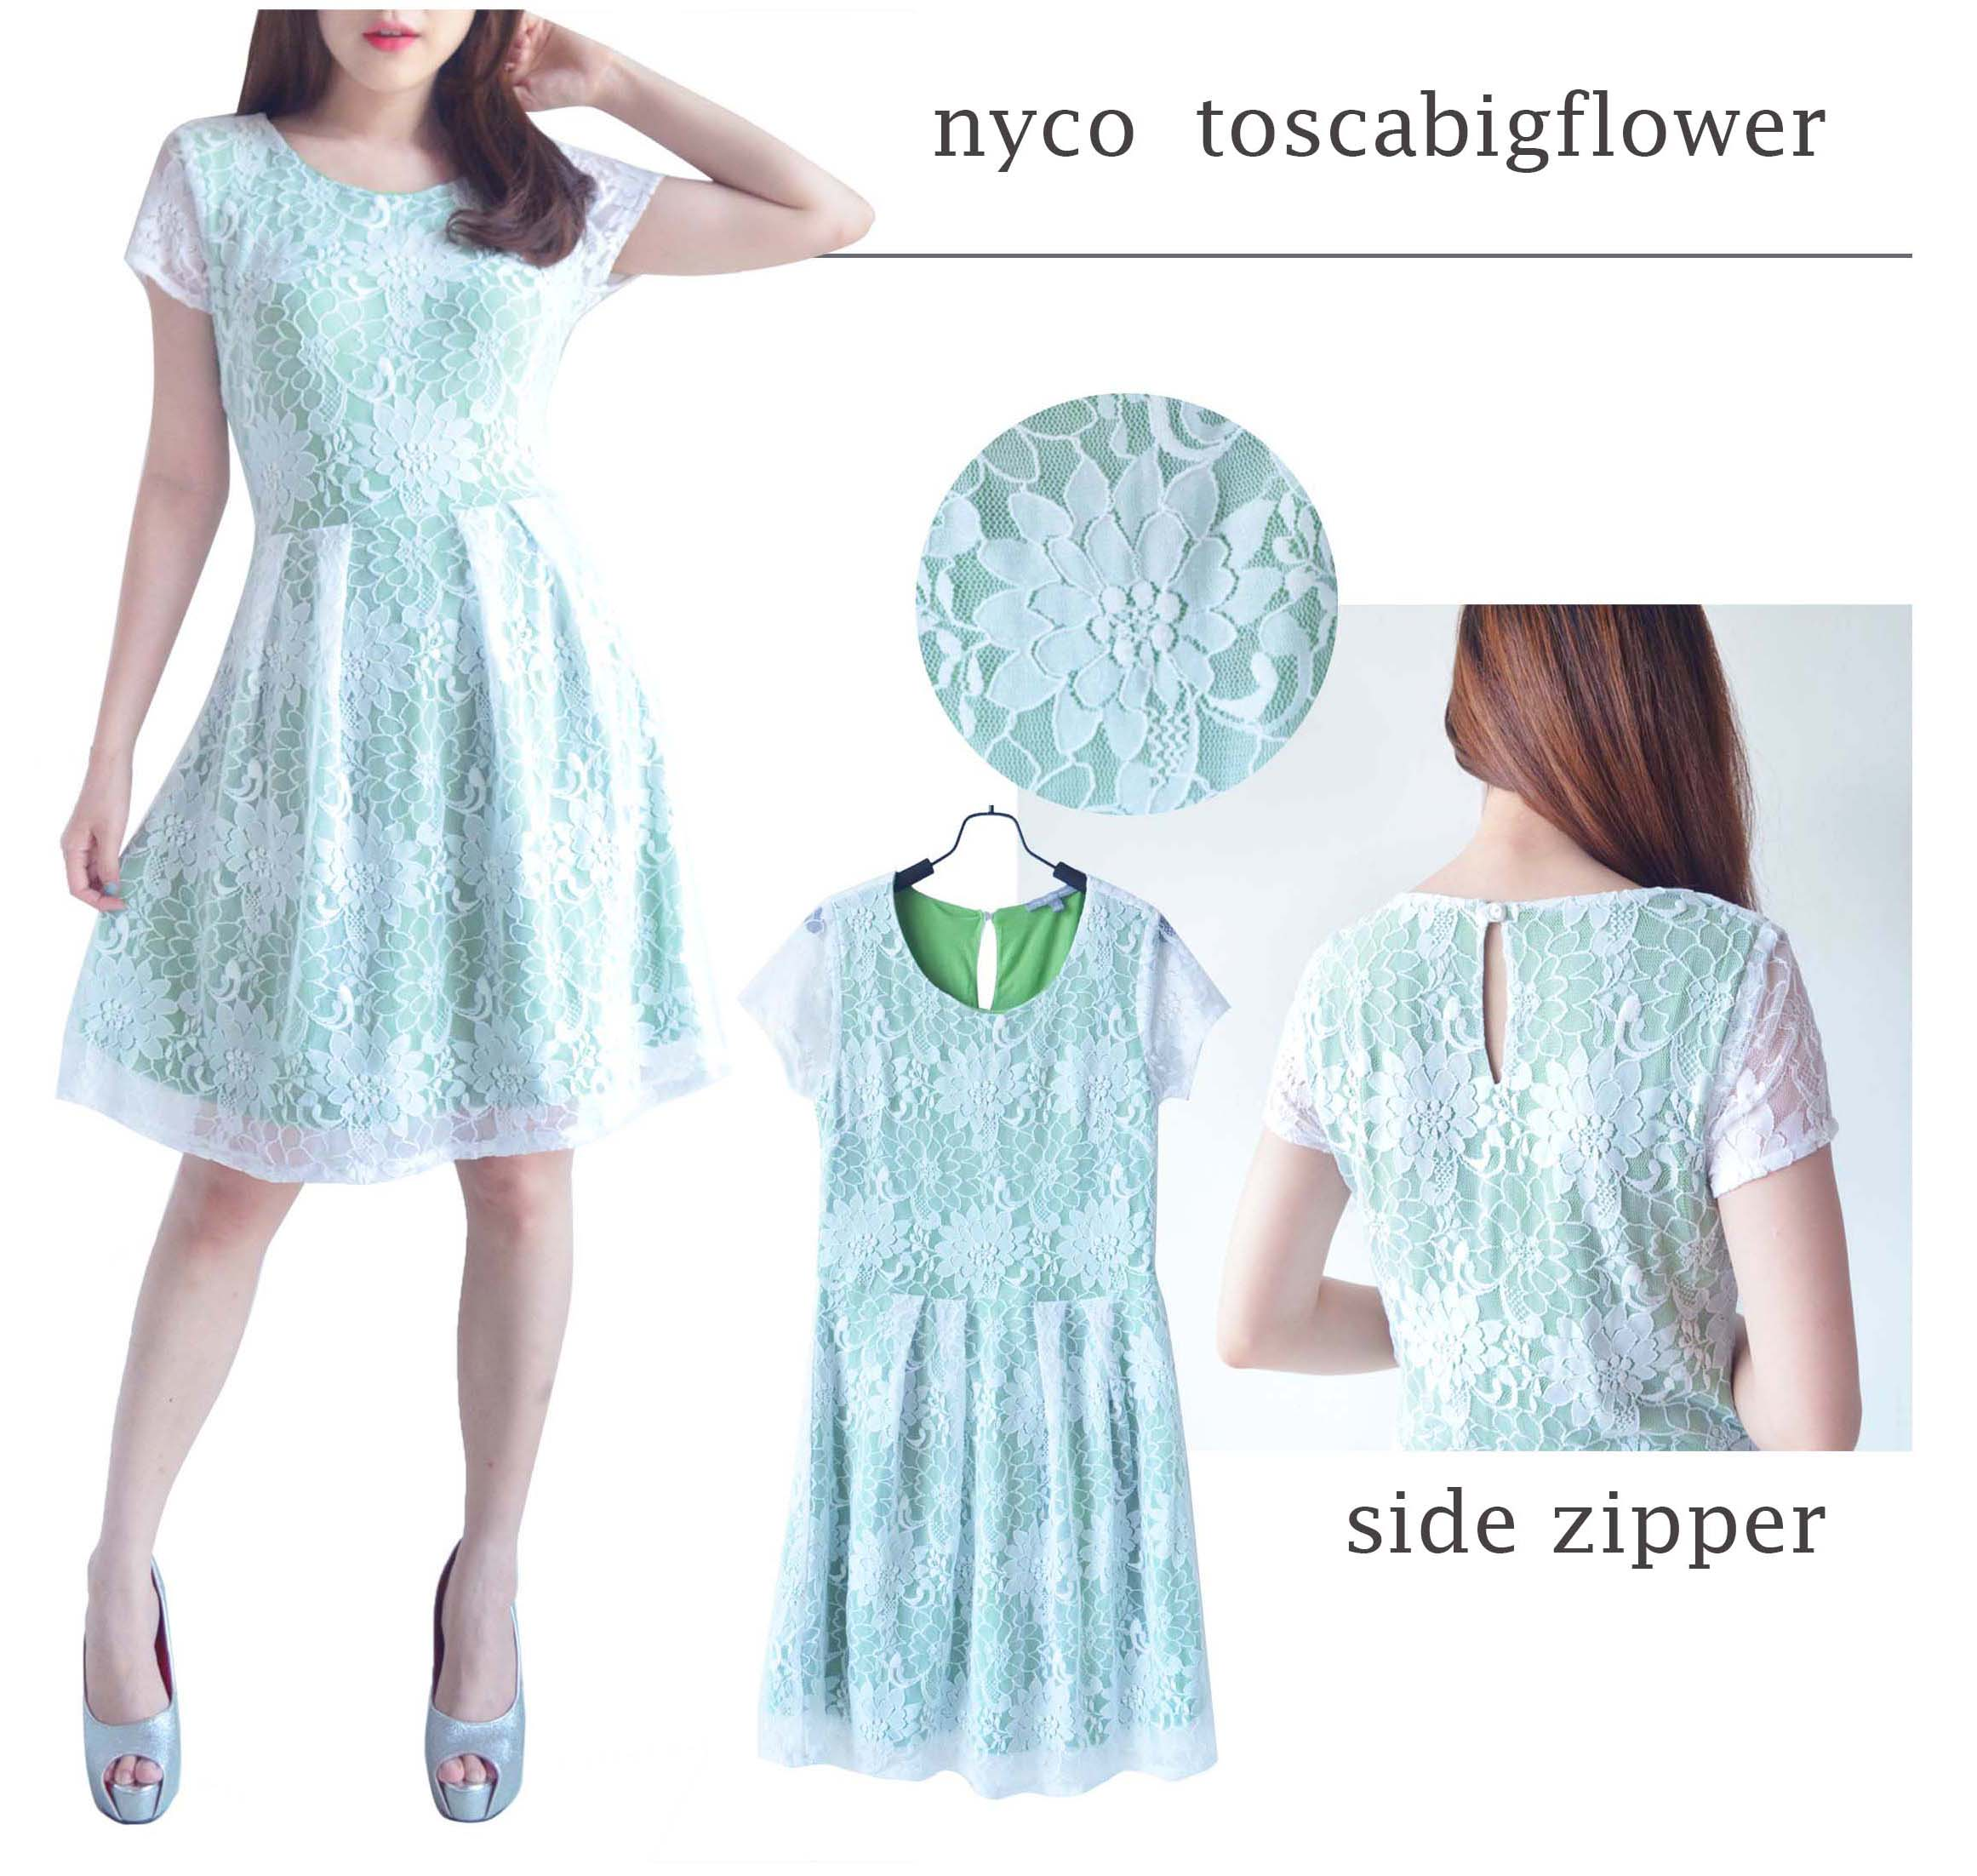 nyco lace dress bahan stretch lace cotton elastene tebal and halus side zipper back zipper Premium quality elastene 10cm